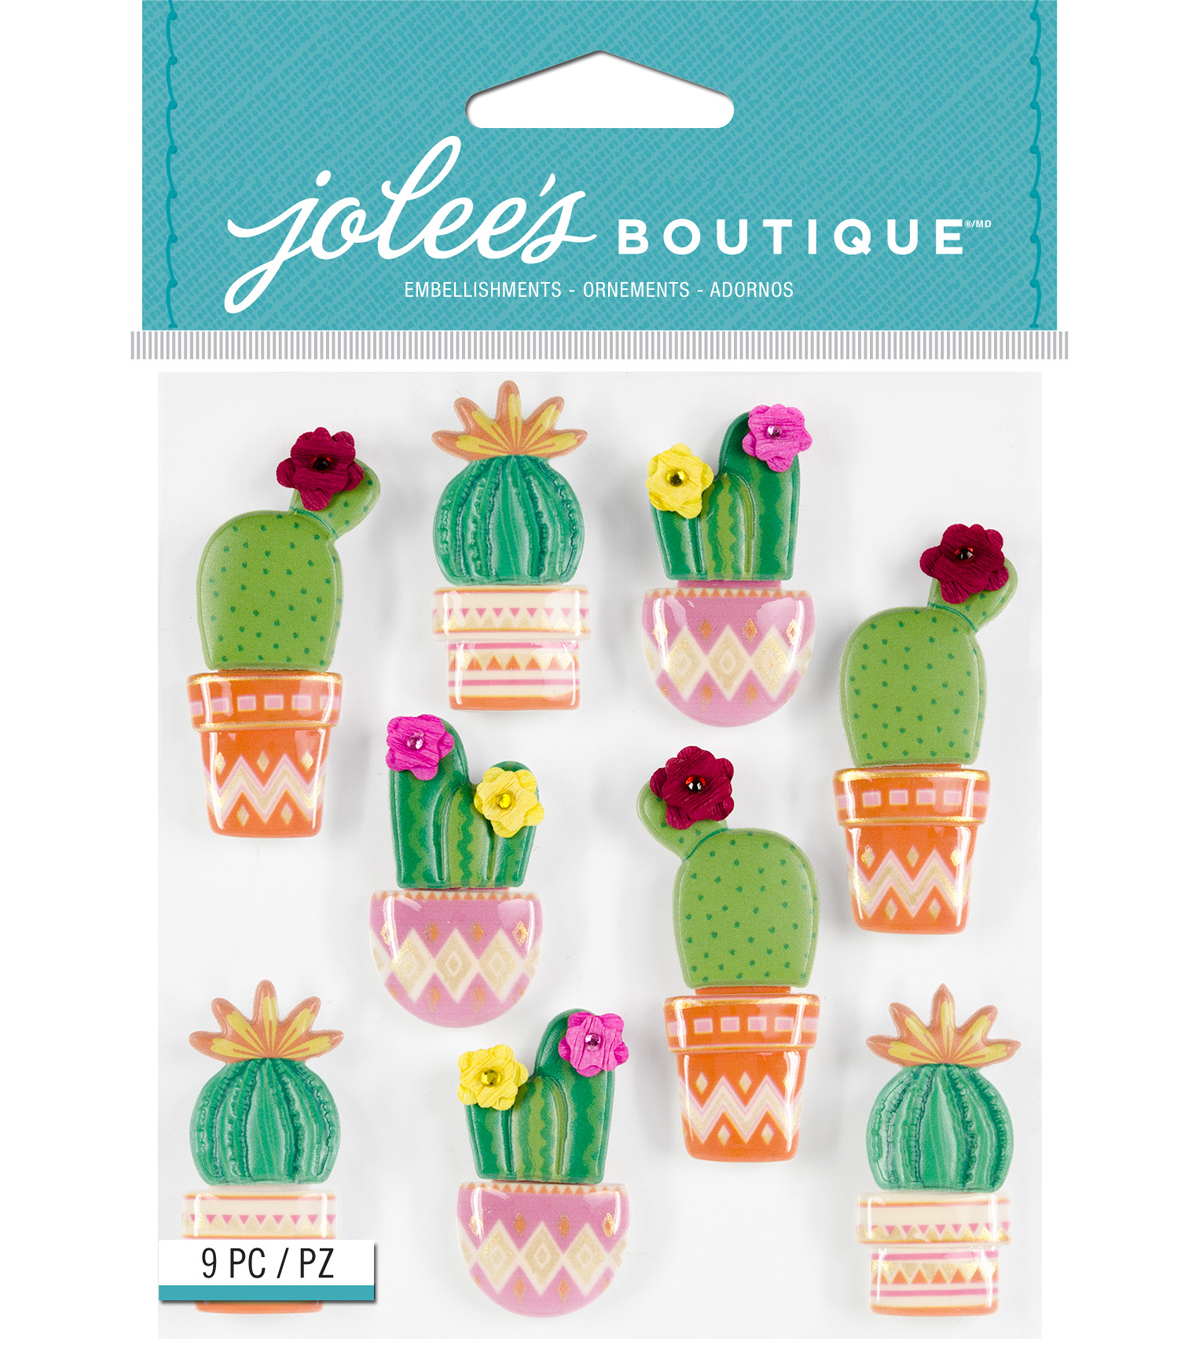 Jolee's Boutique Stickers-Cacti